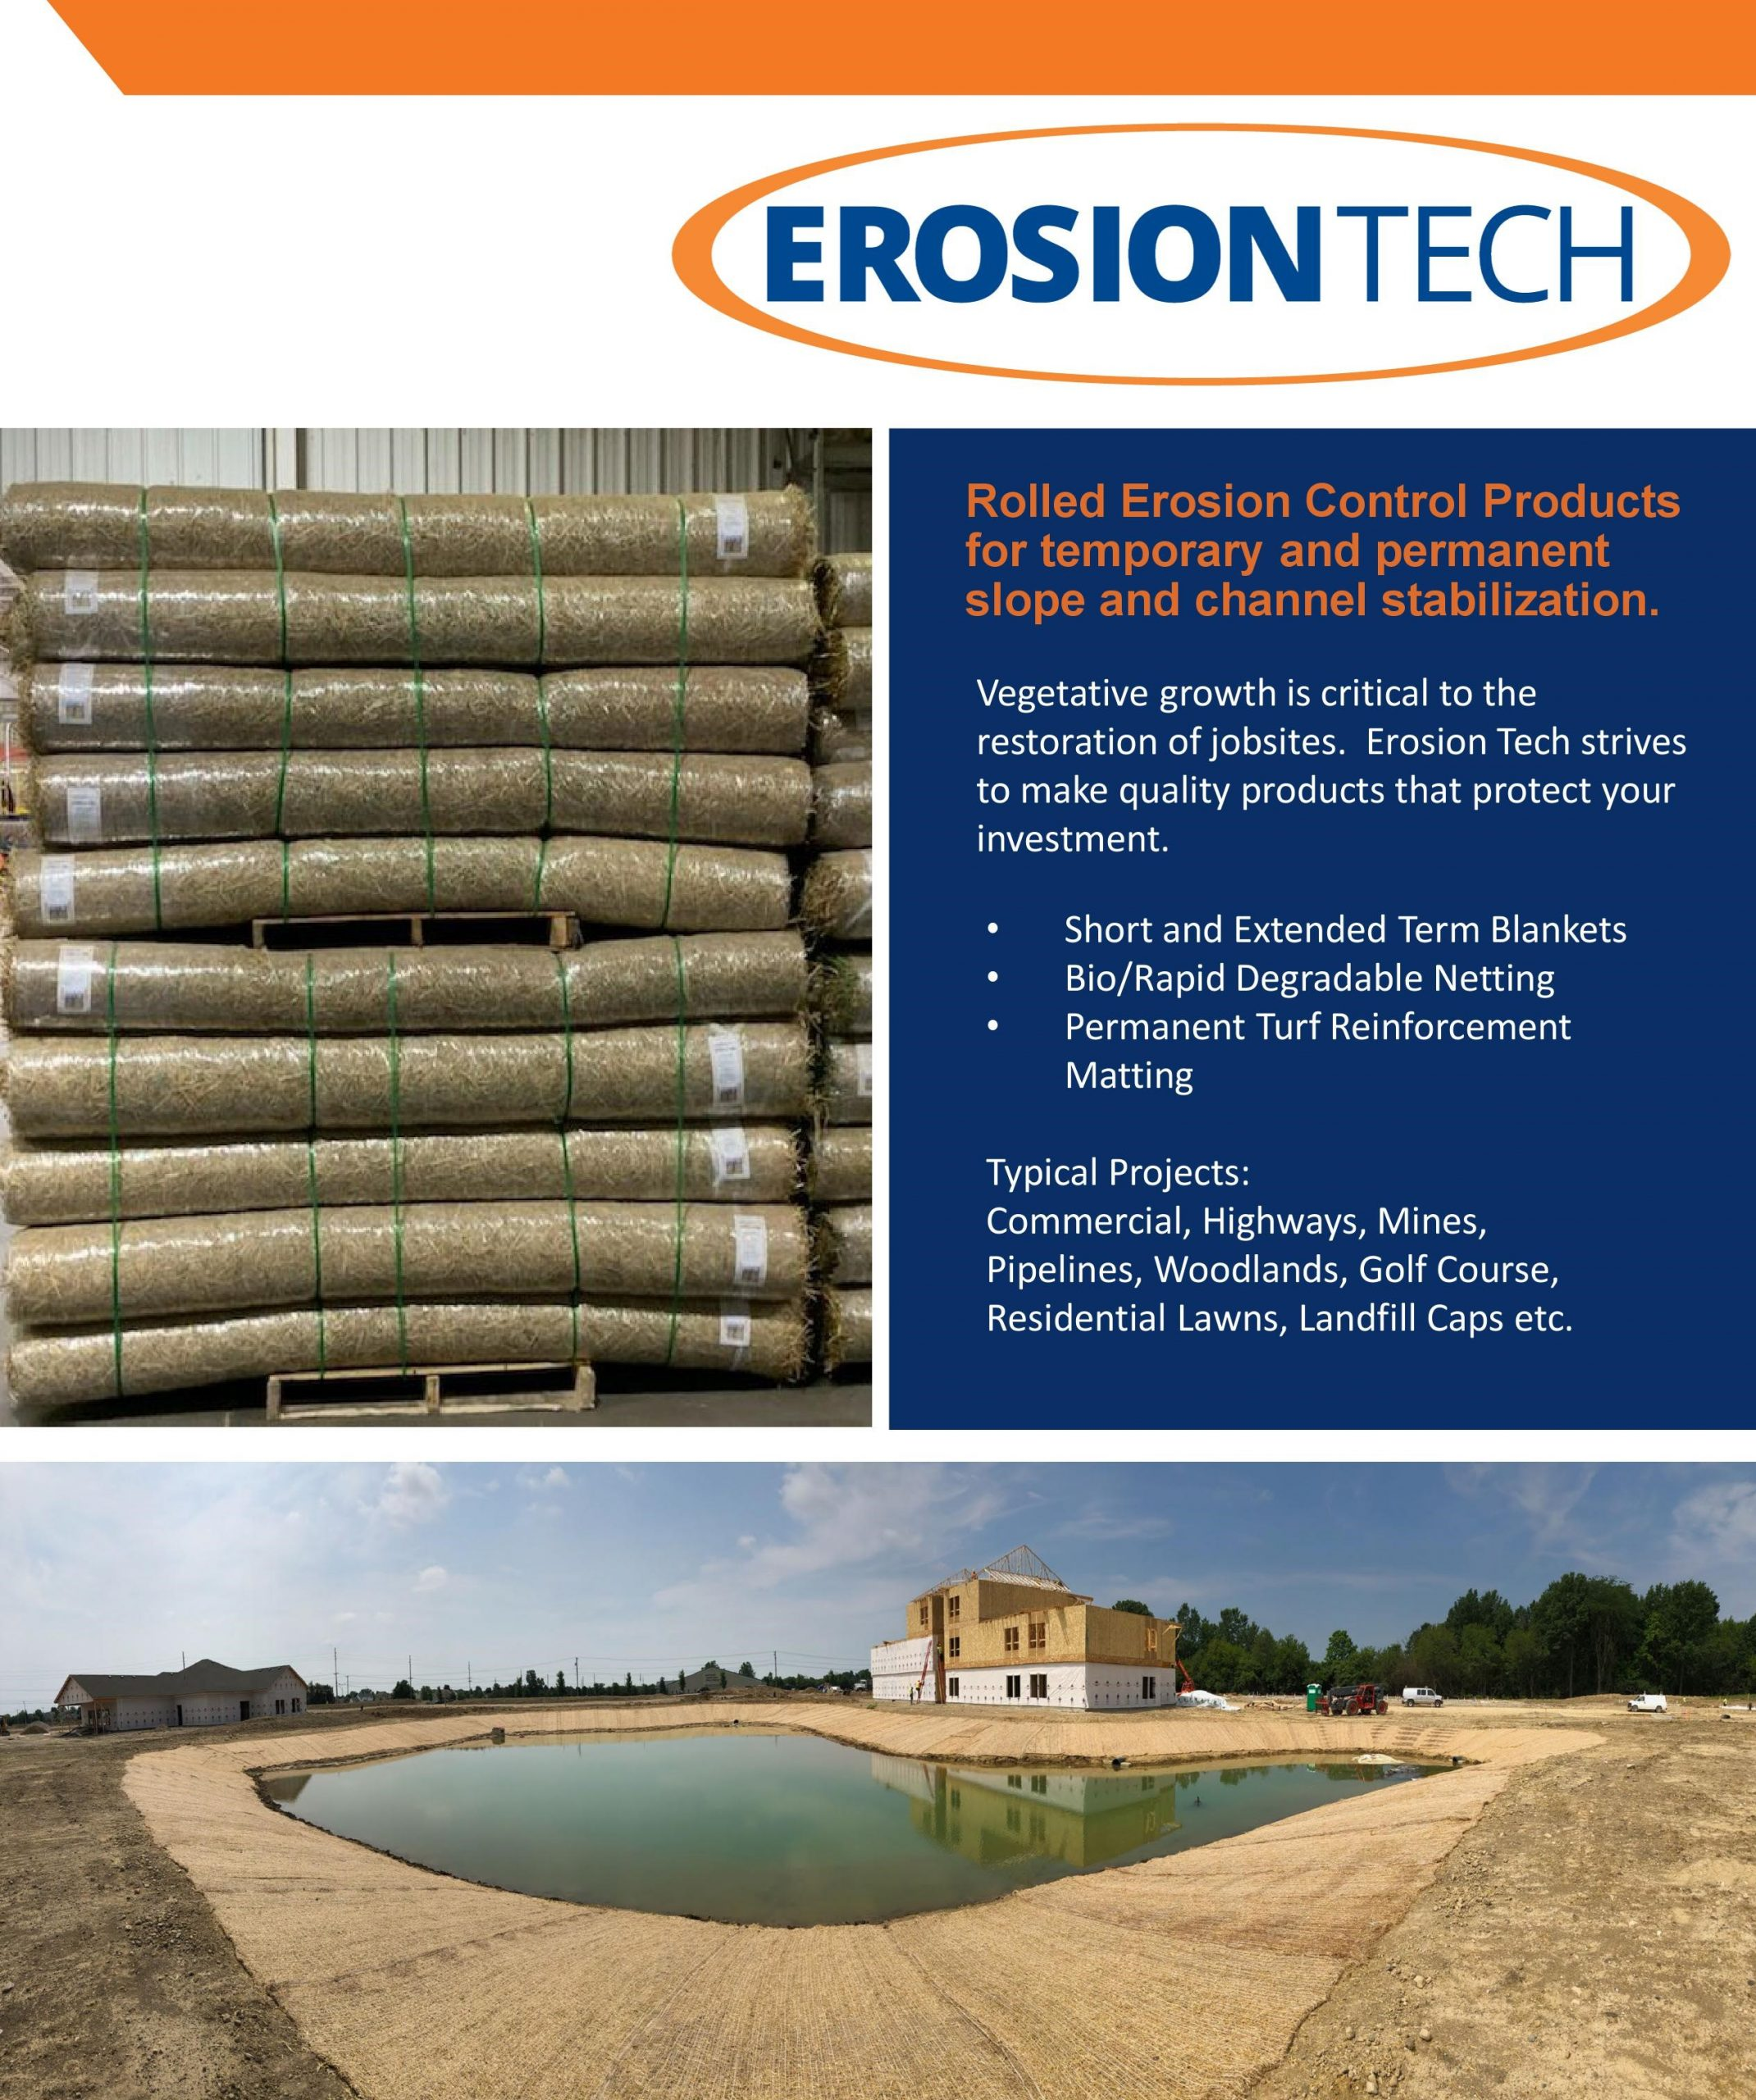 Starting in Spring of 2020, we will now be stocking erosion control blankets.